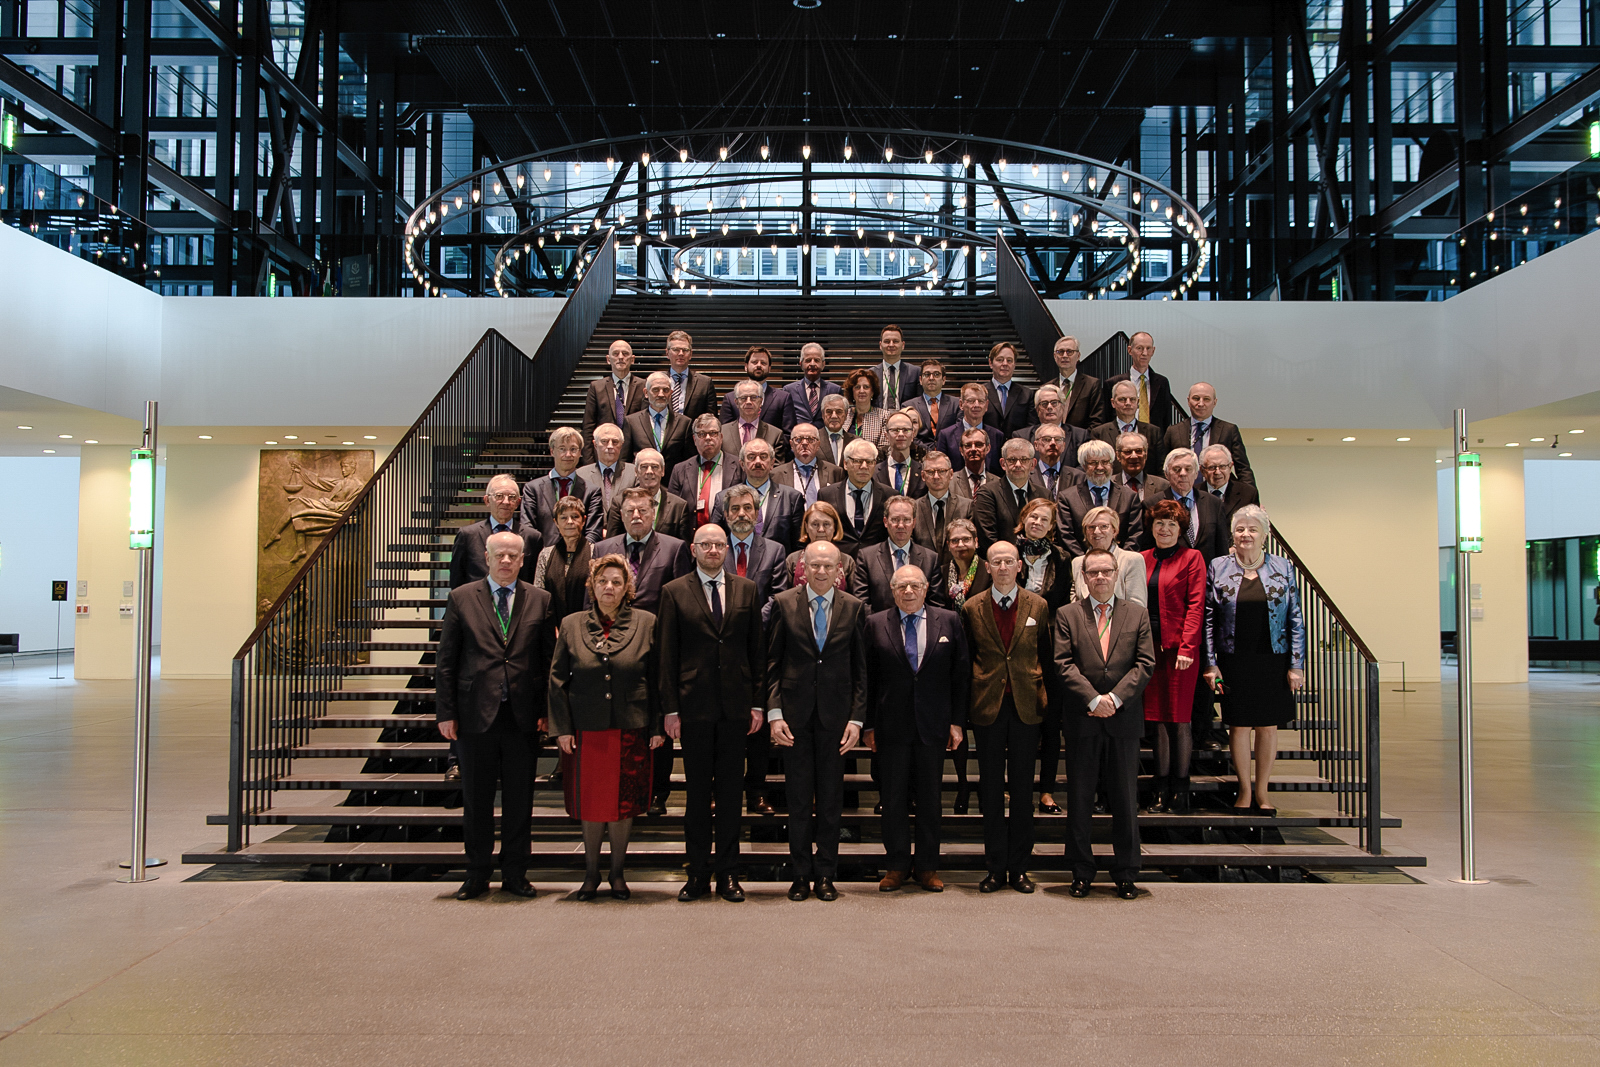 12.03.2018.  Joint meeting of the Court of Justice and the Network of Presidents of the Supreme Judicial Courts of the European Union